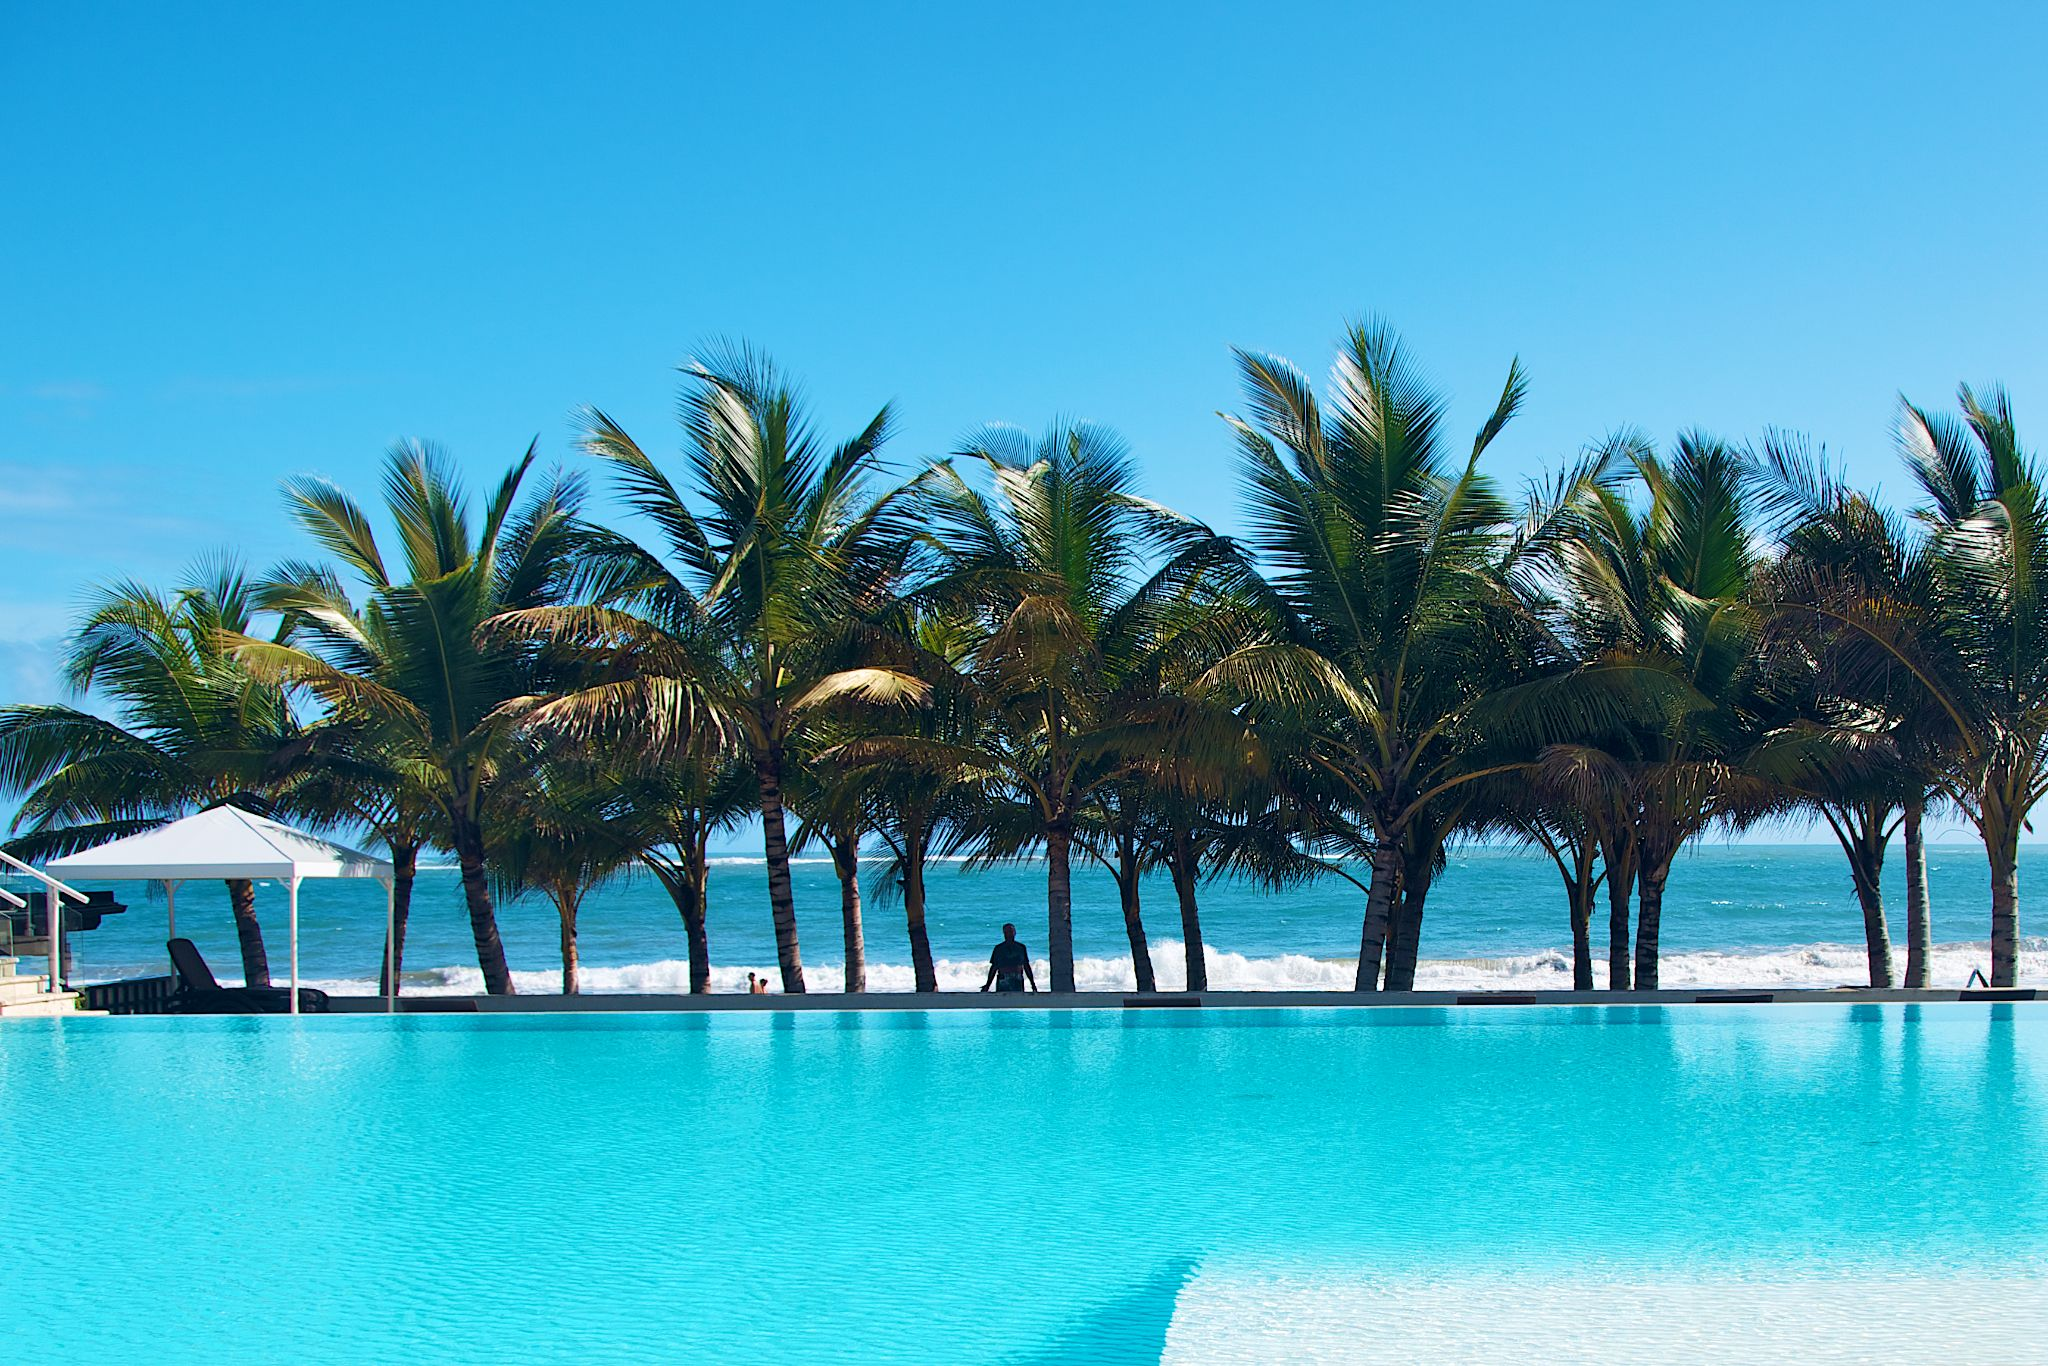 The Pool at The Millennium Luxury Resort In Cabarete